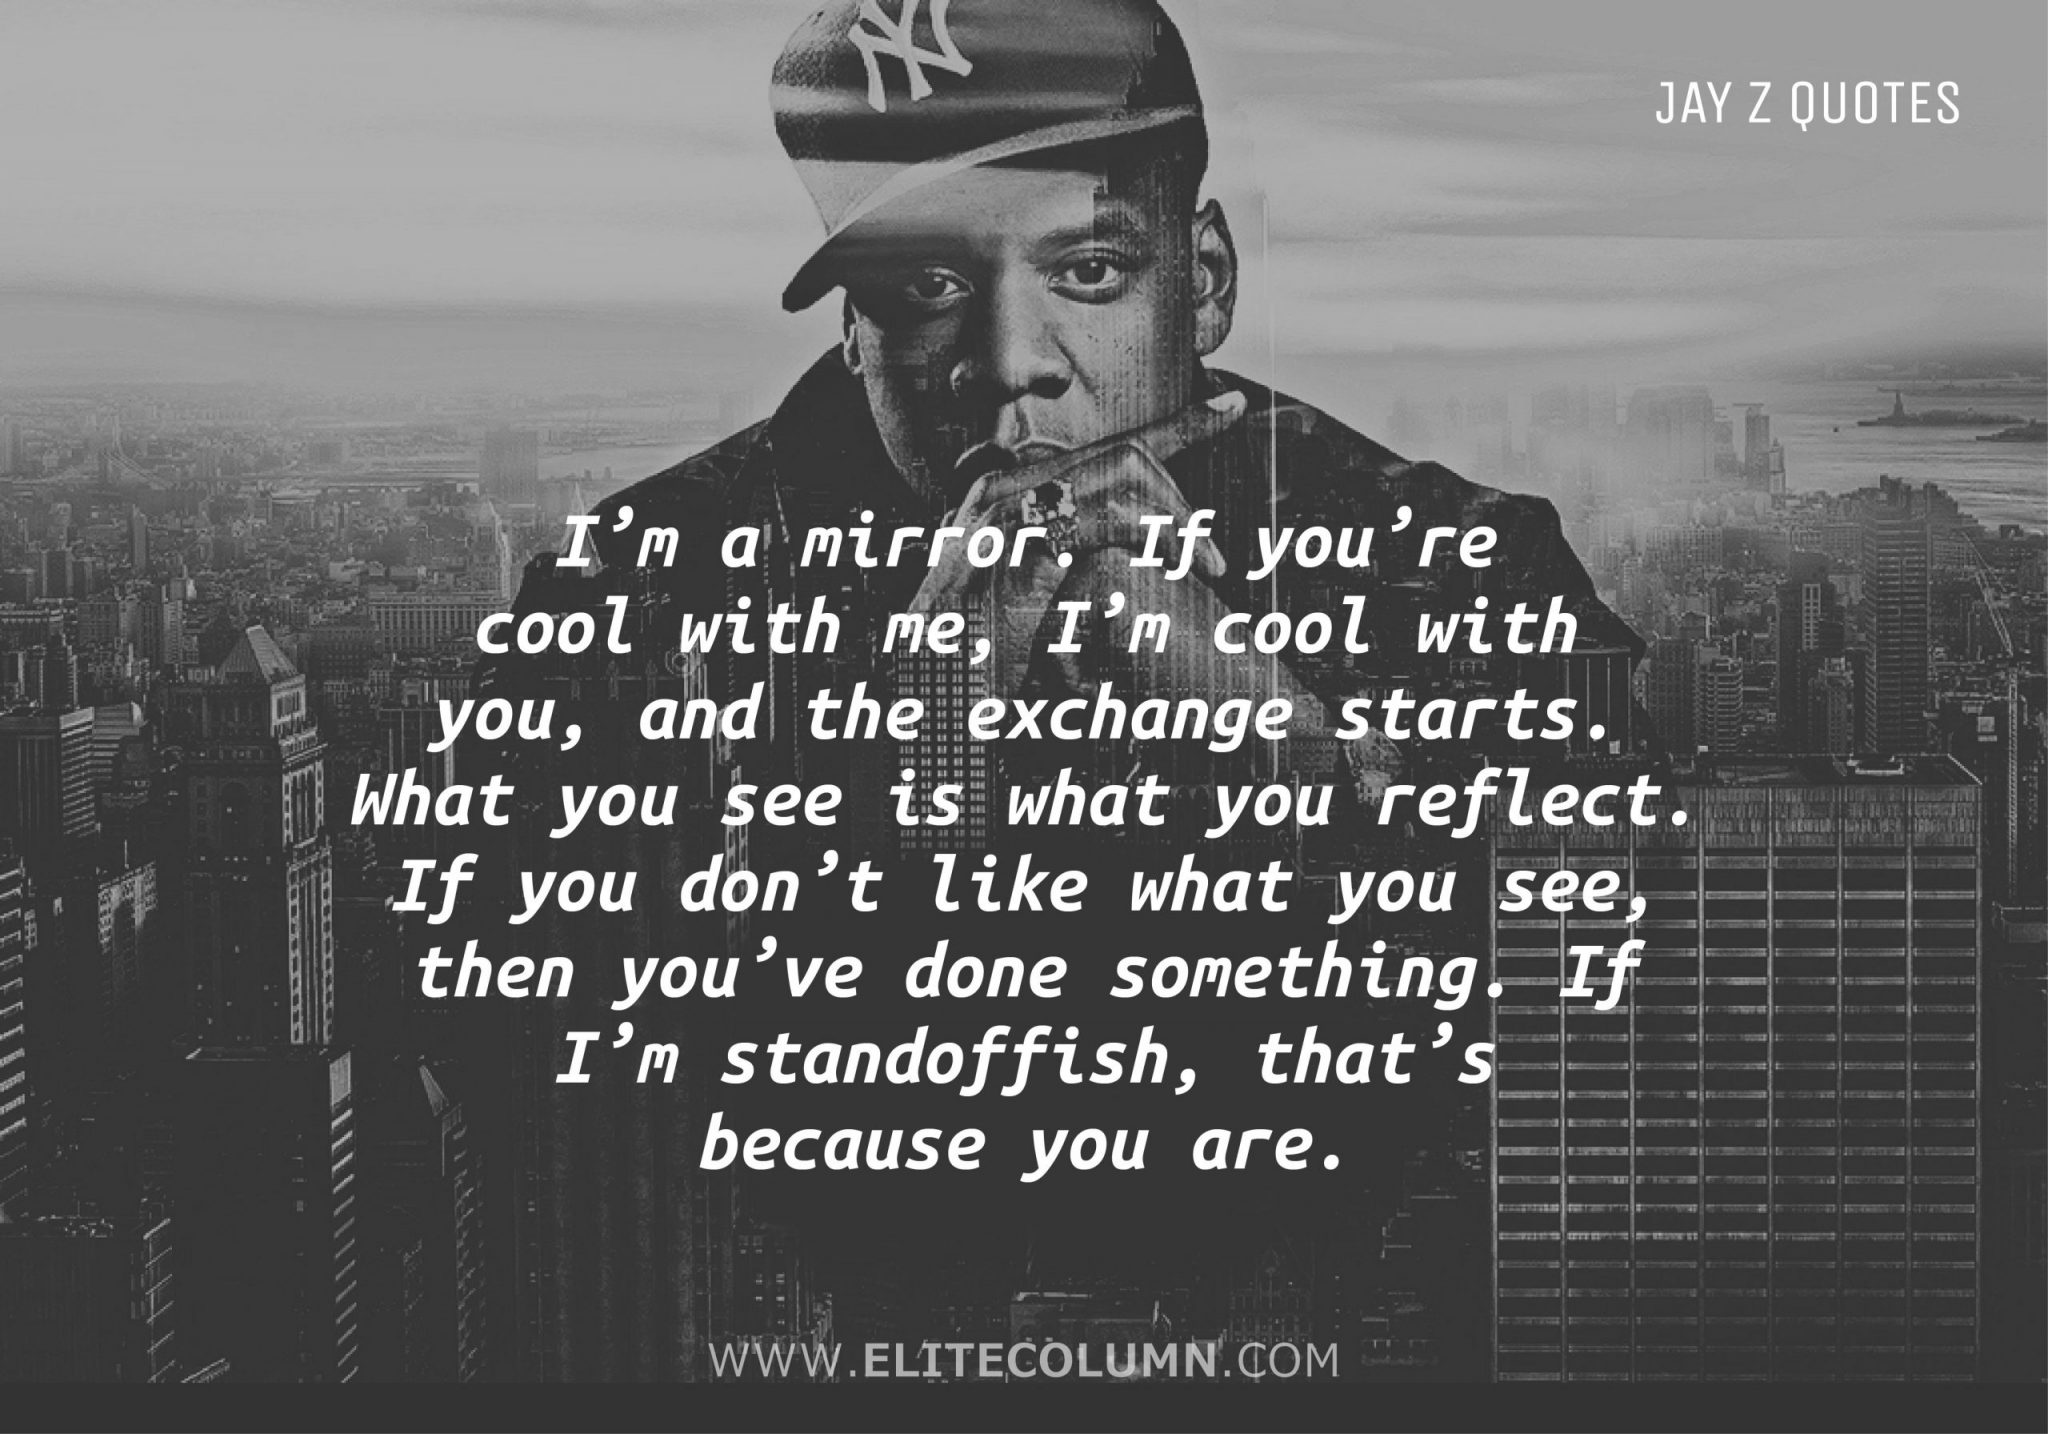 Jay Z Quotes (8)